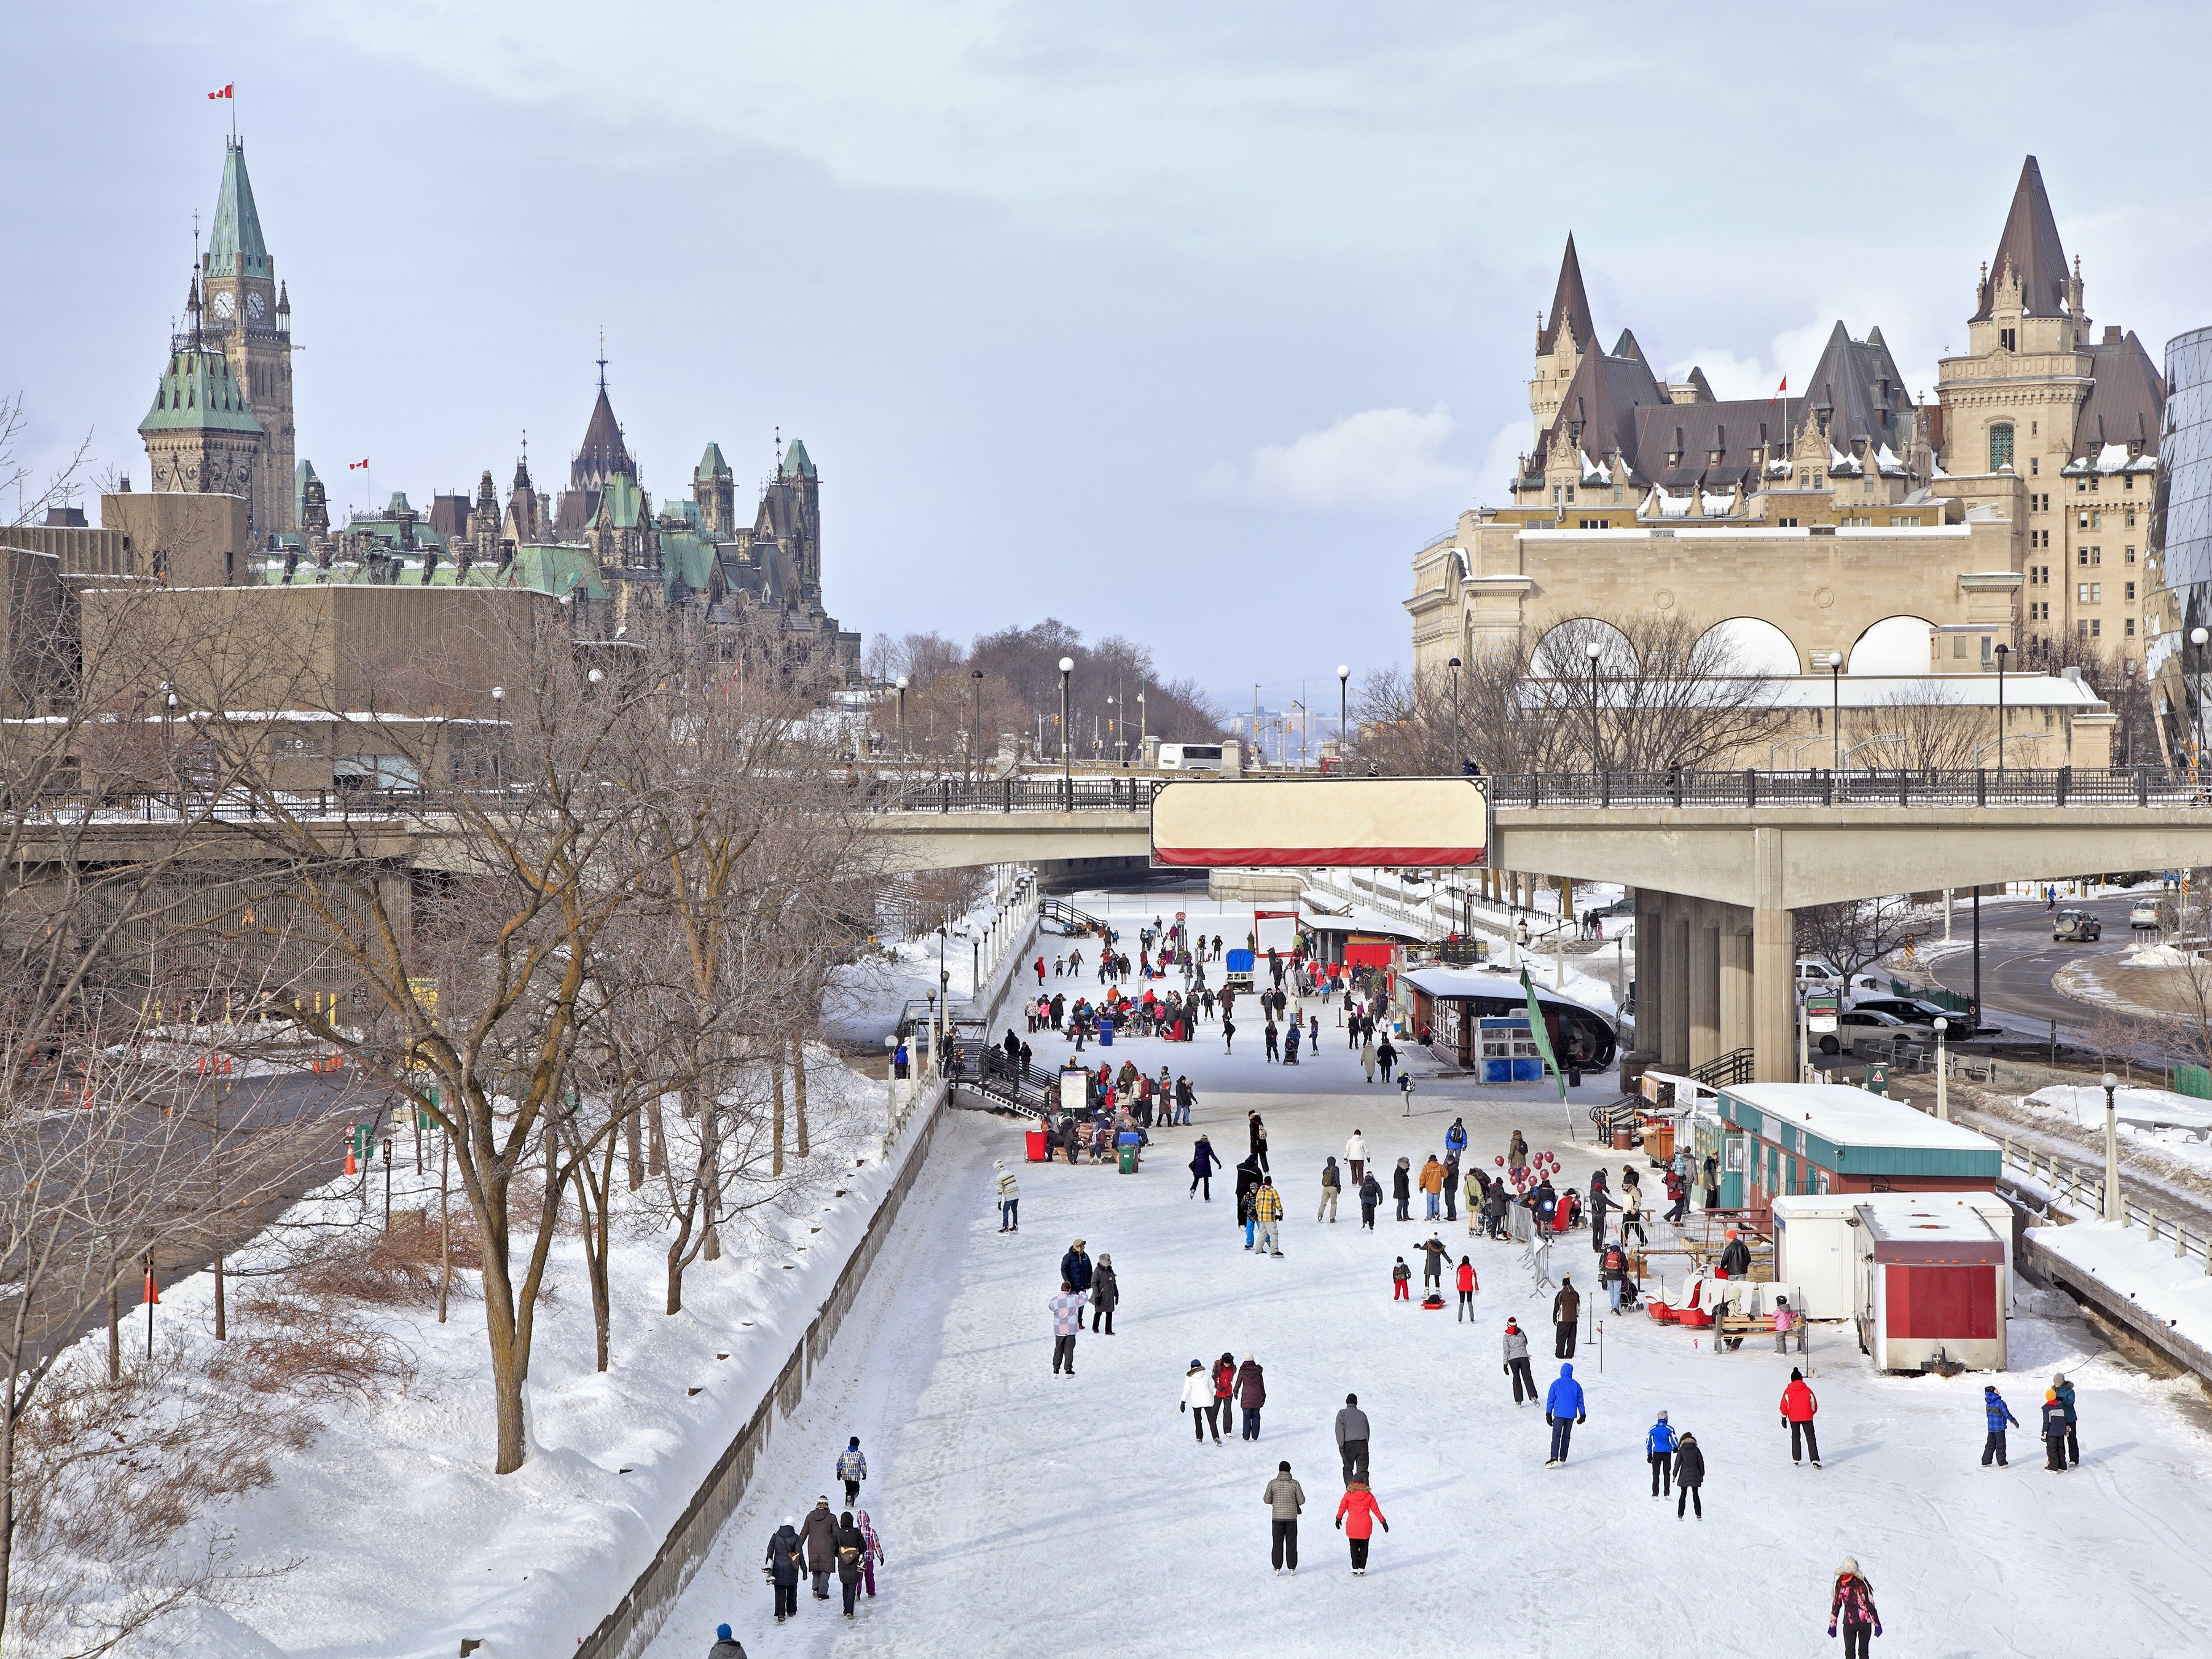 My Travels: Skating on Ottawa's Rideau Canal